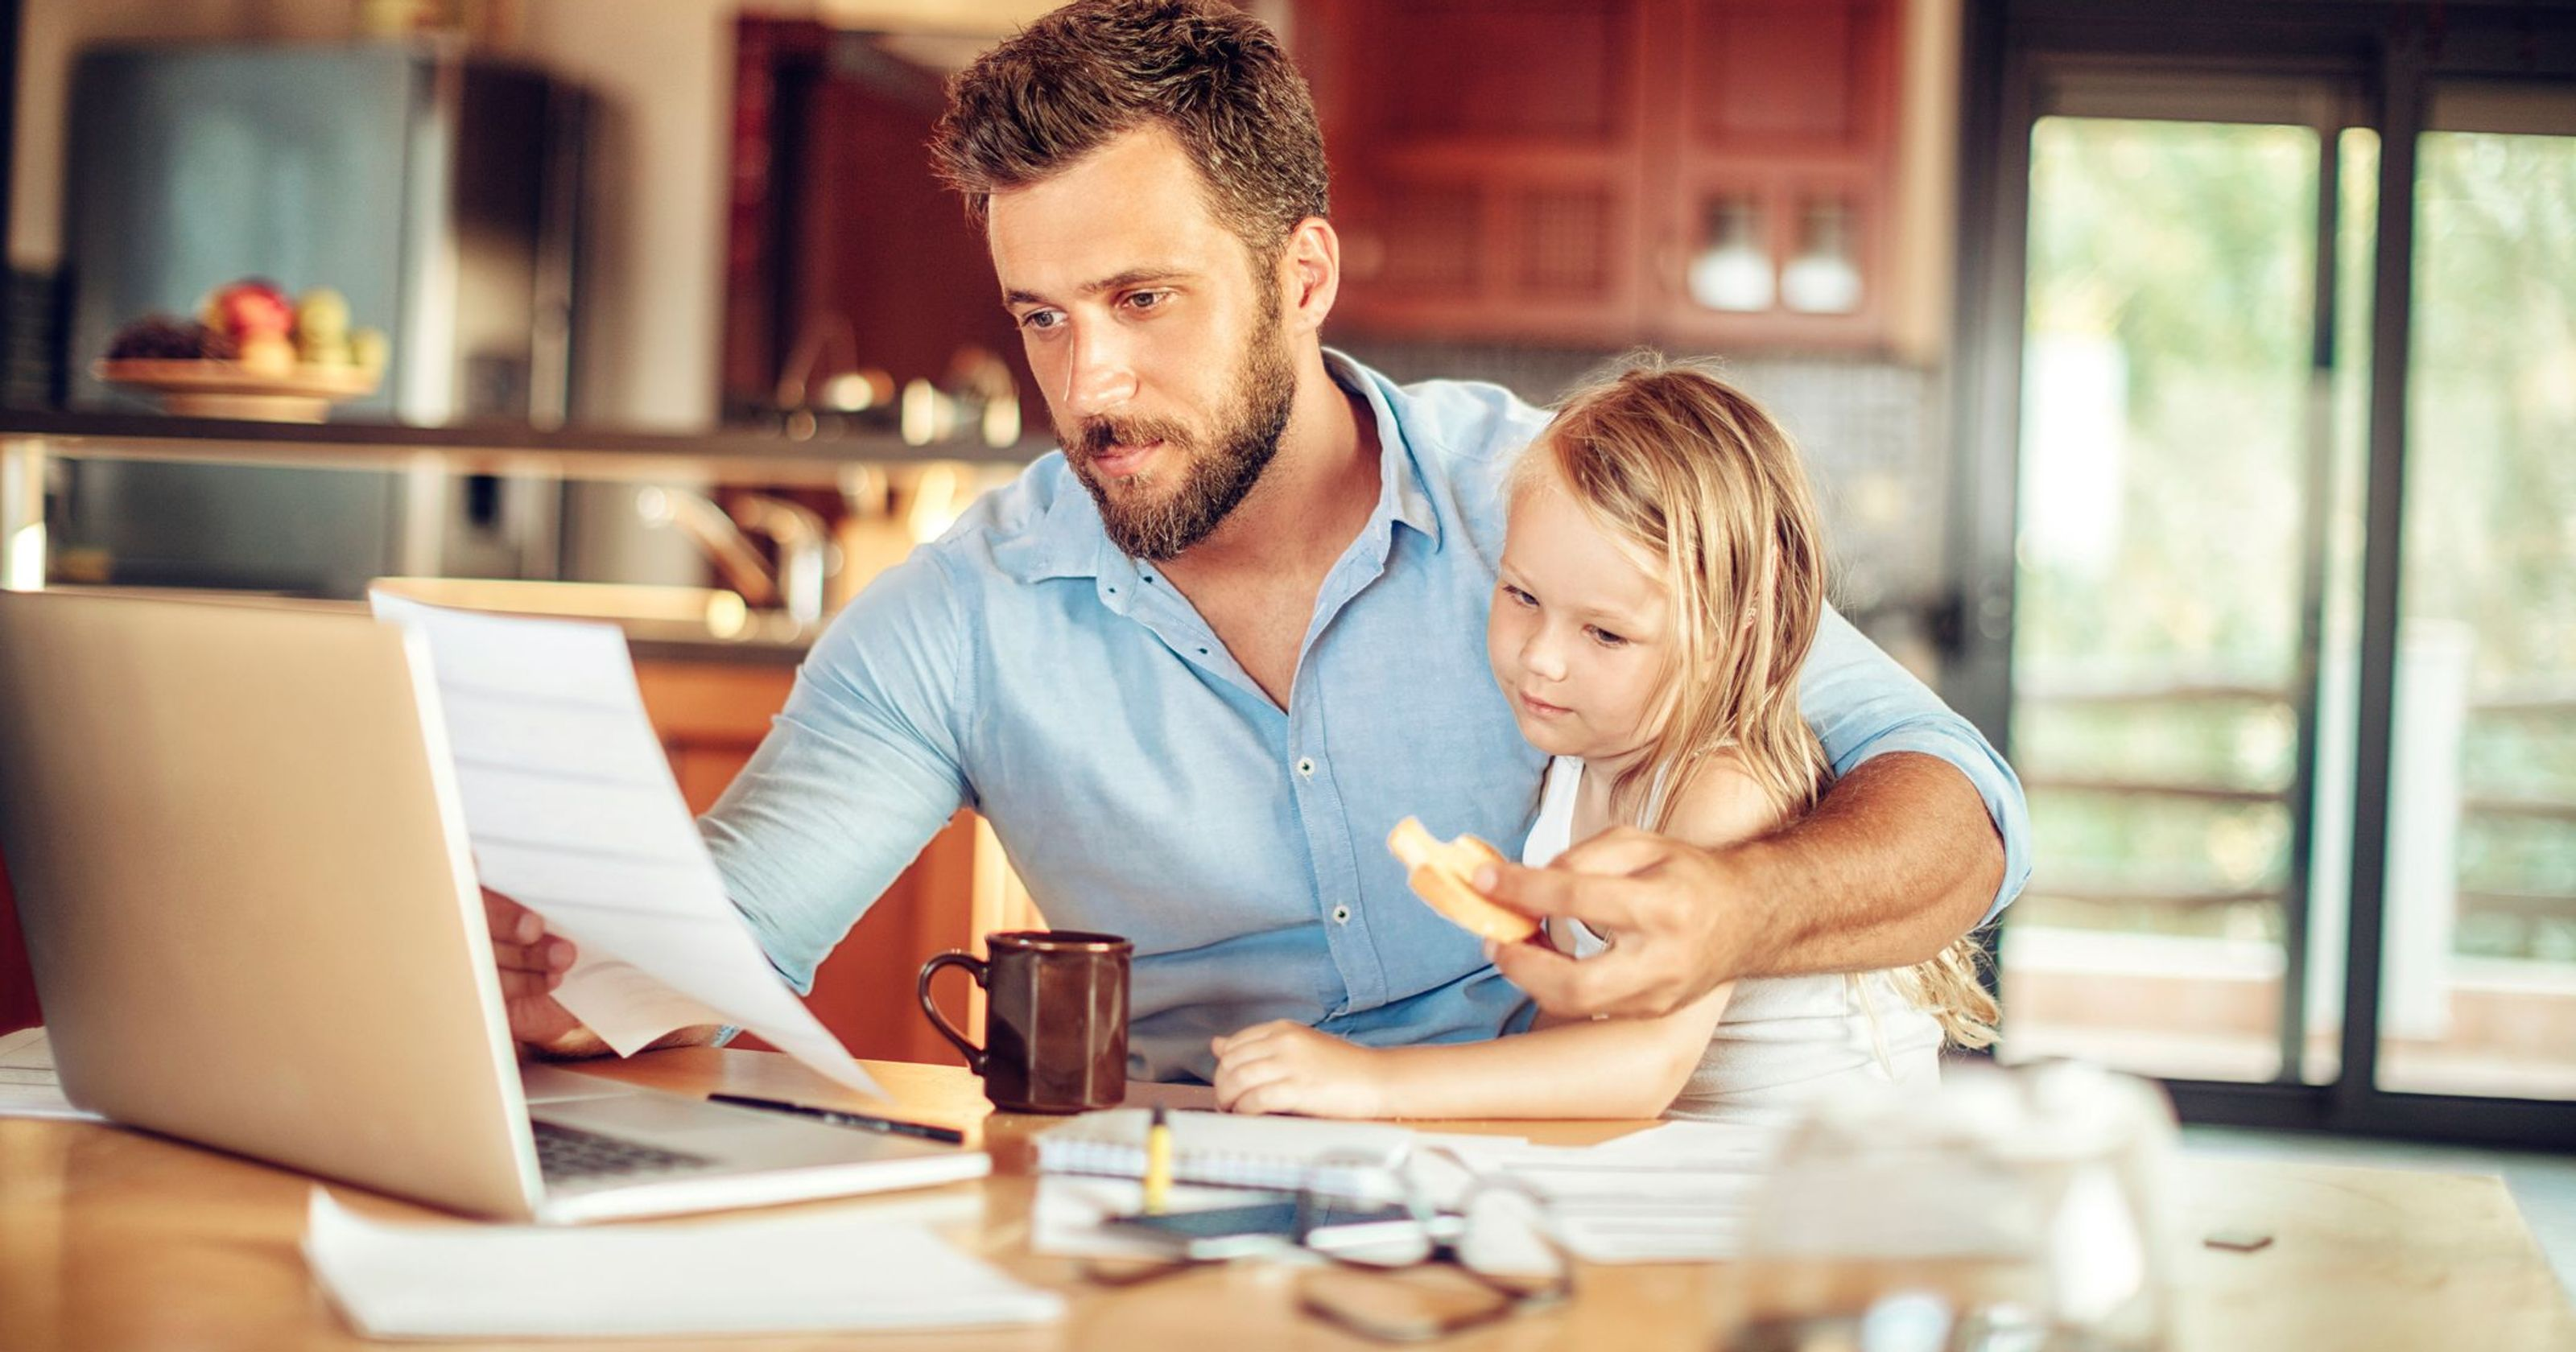 Working from Home To Care for Children Just Got Trickier